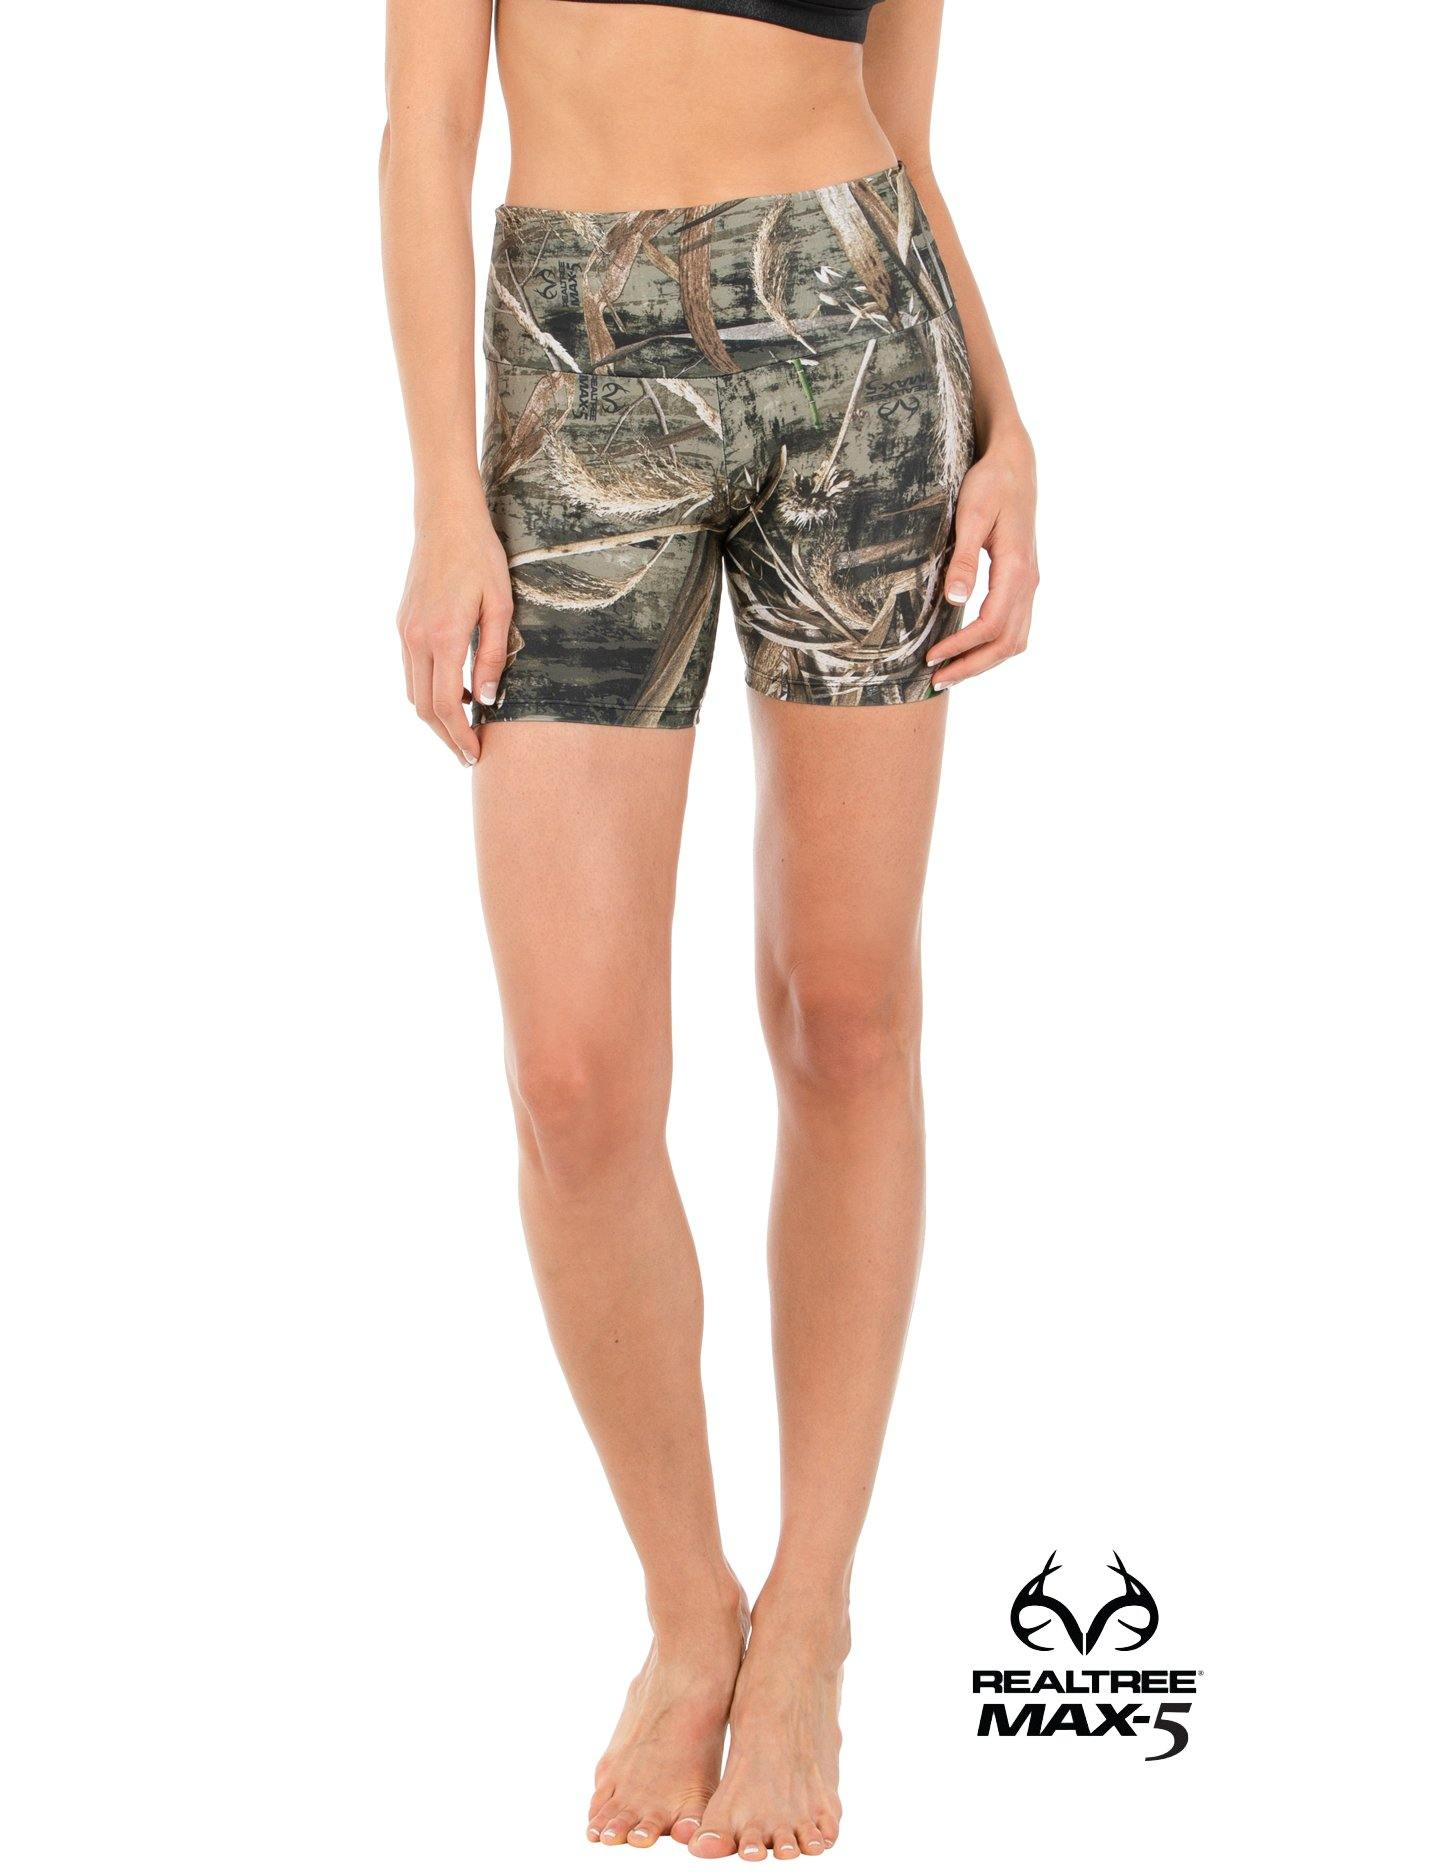 Apsara Shorts High Waist, Realtree Max-5